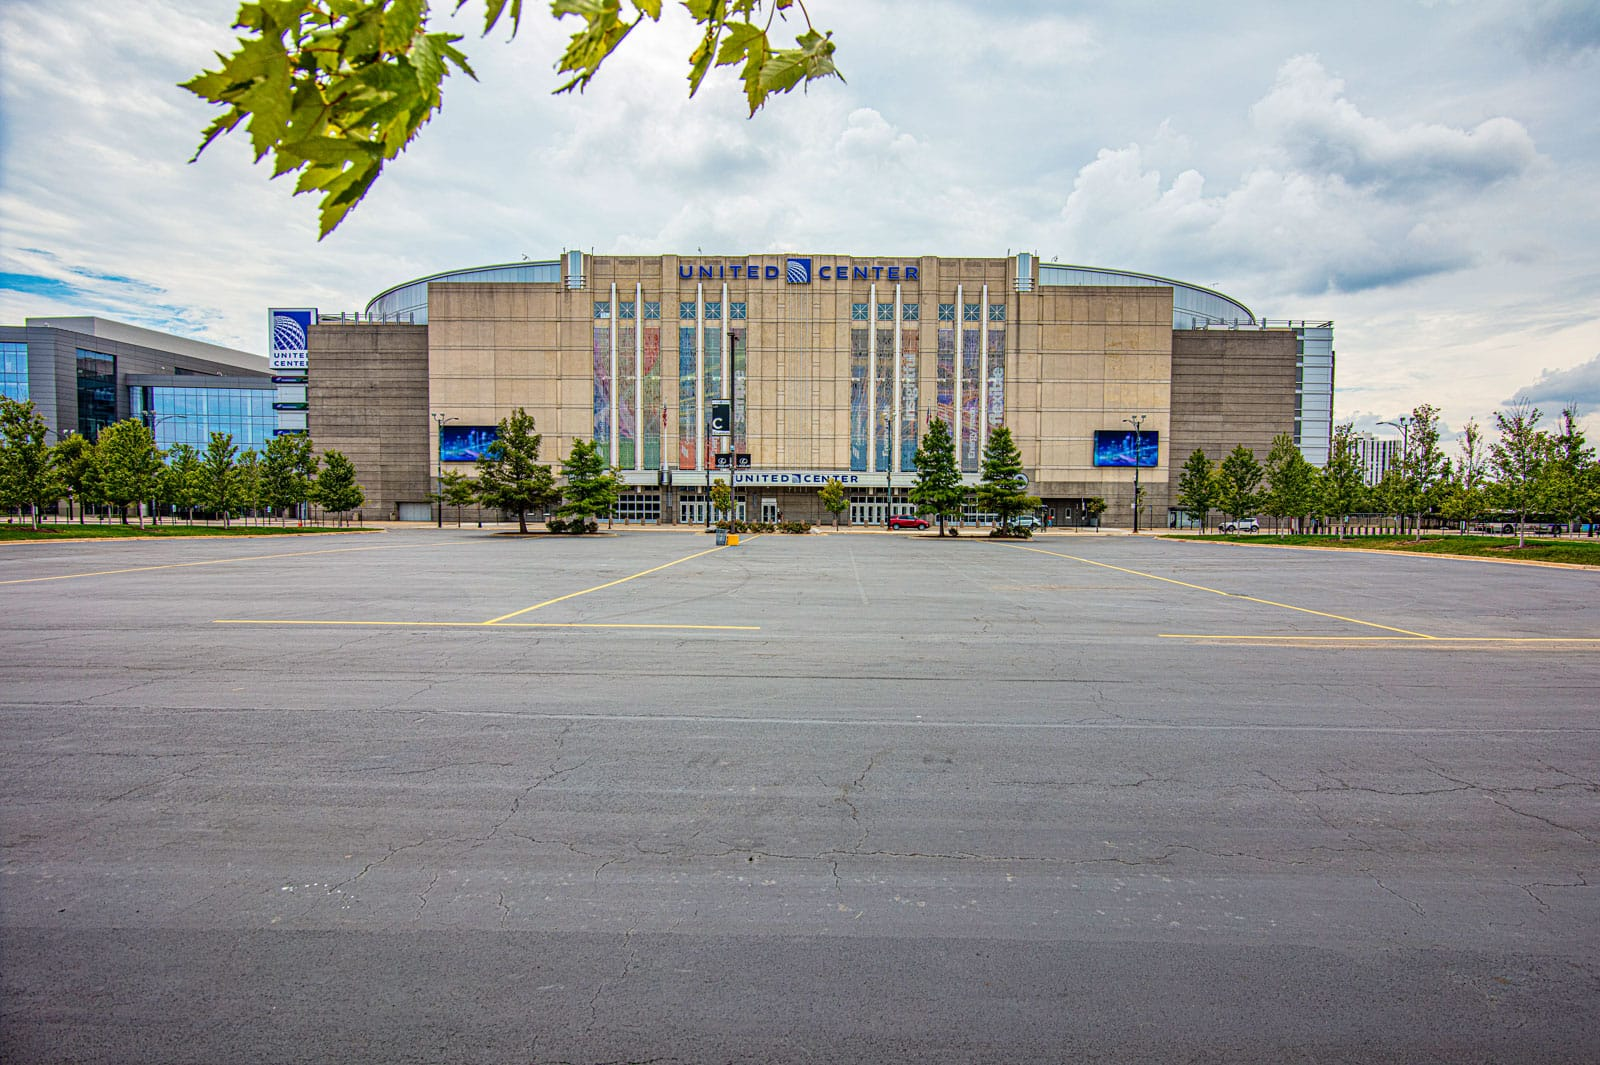 The site of the former Chicago Stadium at 1800 W. Madison St., in front of the United Center